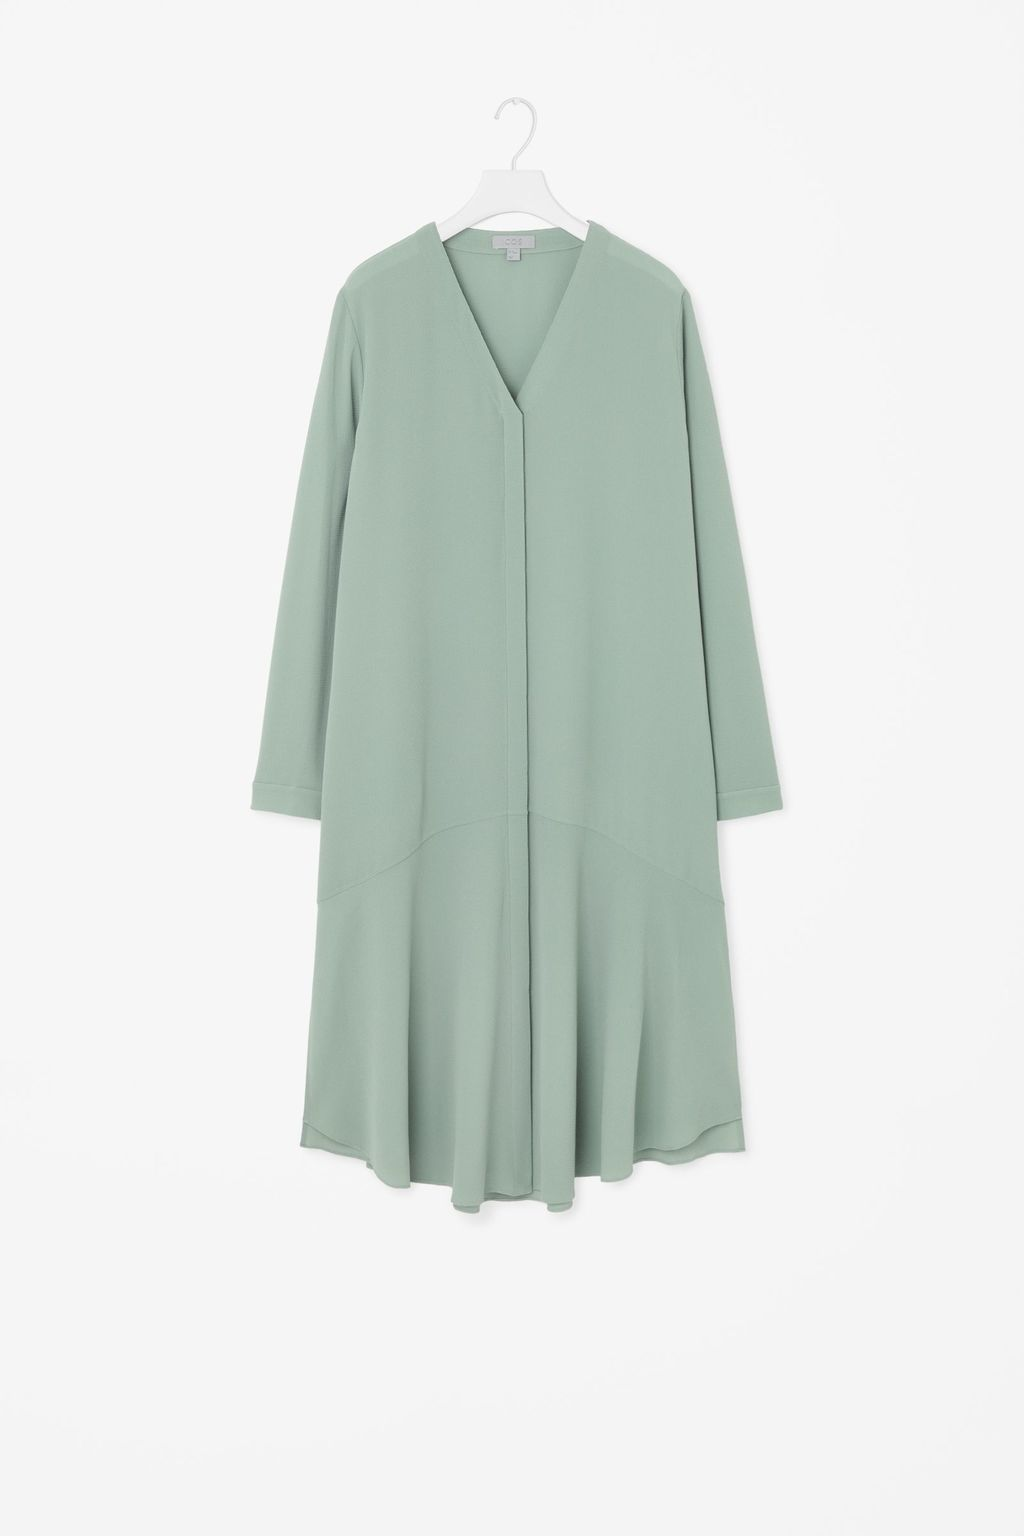 Shirt Dress With Slits - style: shift; length: calf length; neckline: v-neck; fit: loose; pattern: plain; predominant colour: pistachio; occasions: casual; fibres: polyester/polyamide - stretch; sleeve length: long sleeve; sleeve style: standard; texture group: sheer fabrics/chiffon/organza etc.; pattern type: fabric; season: s/s 2016; wardrobe: highlight